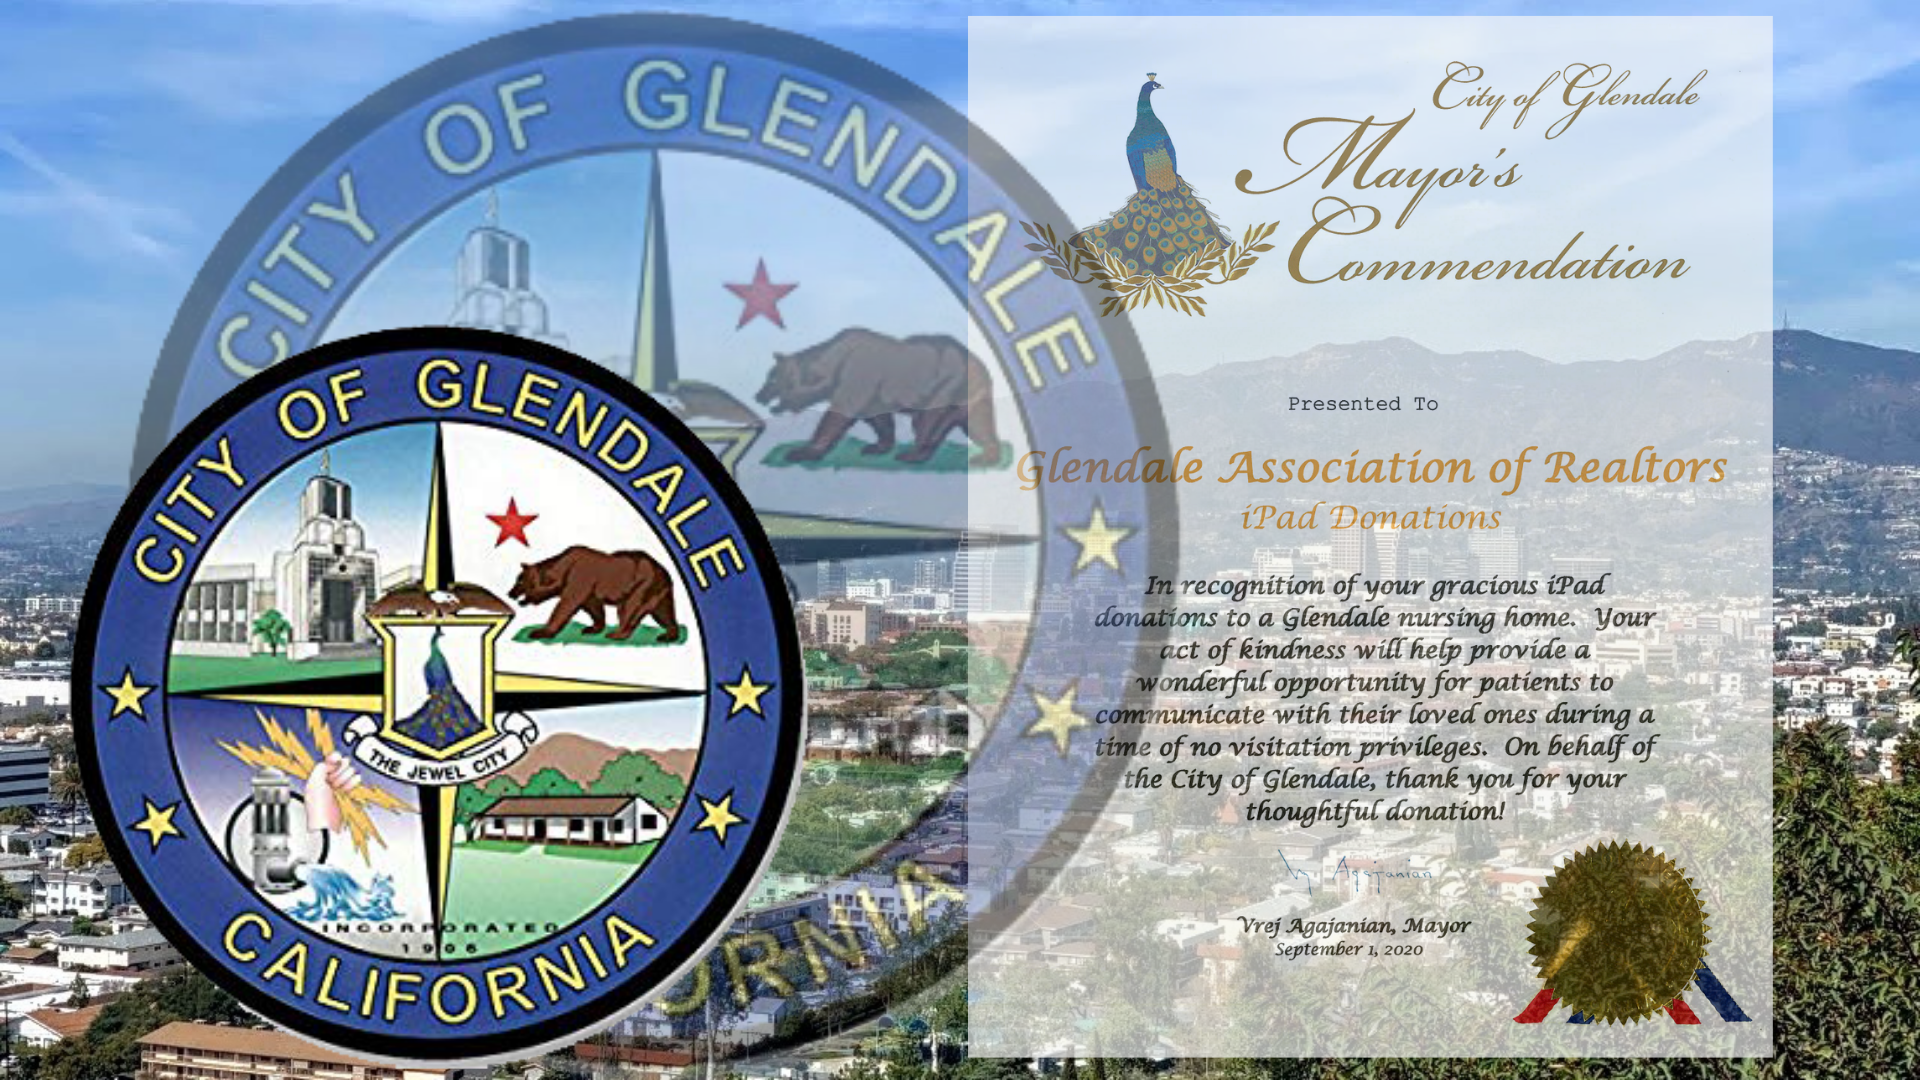 iPad Donation - City of Glendale Commendation - Steven Small - 2020 President